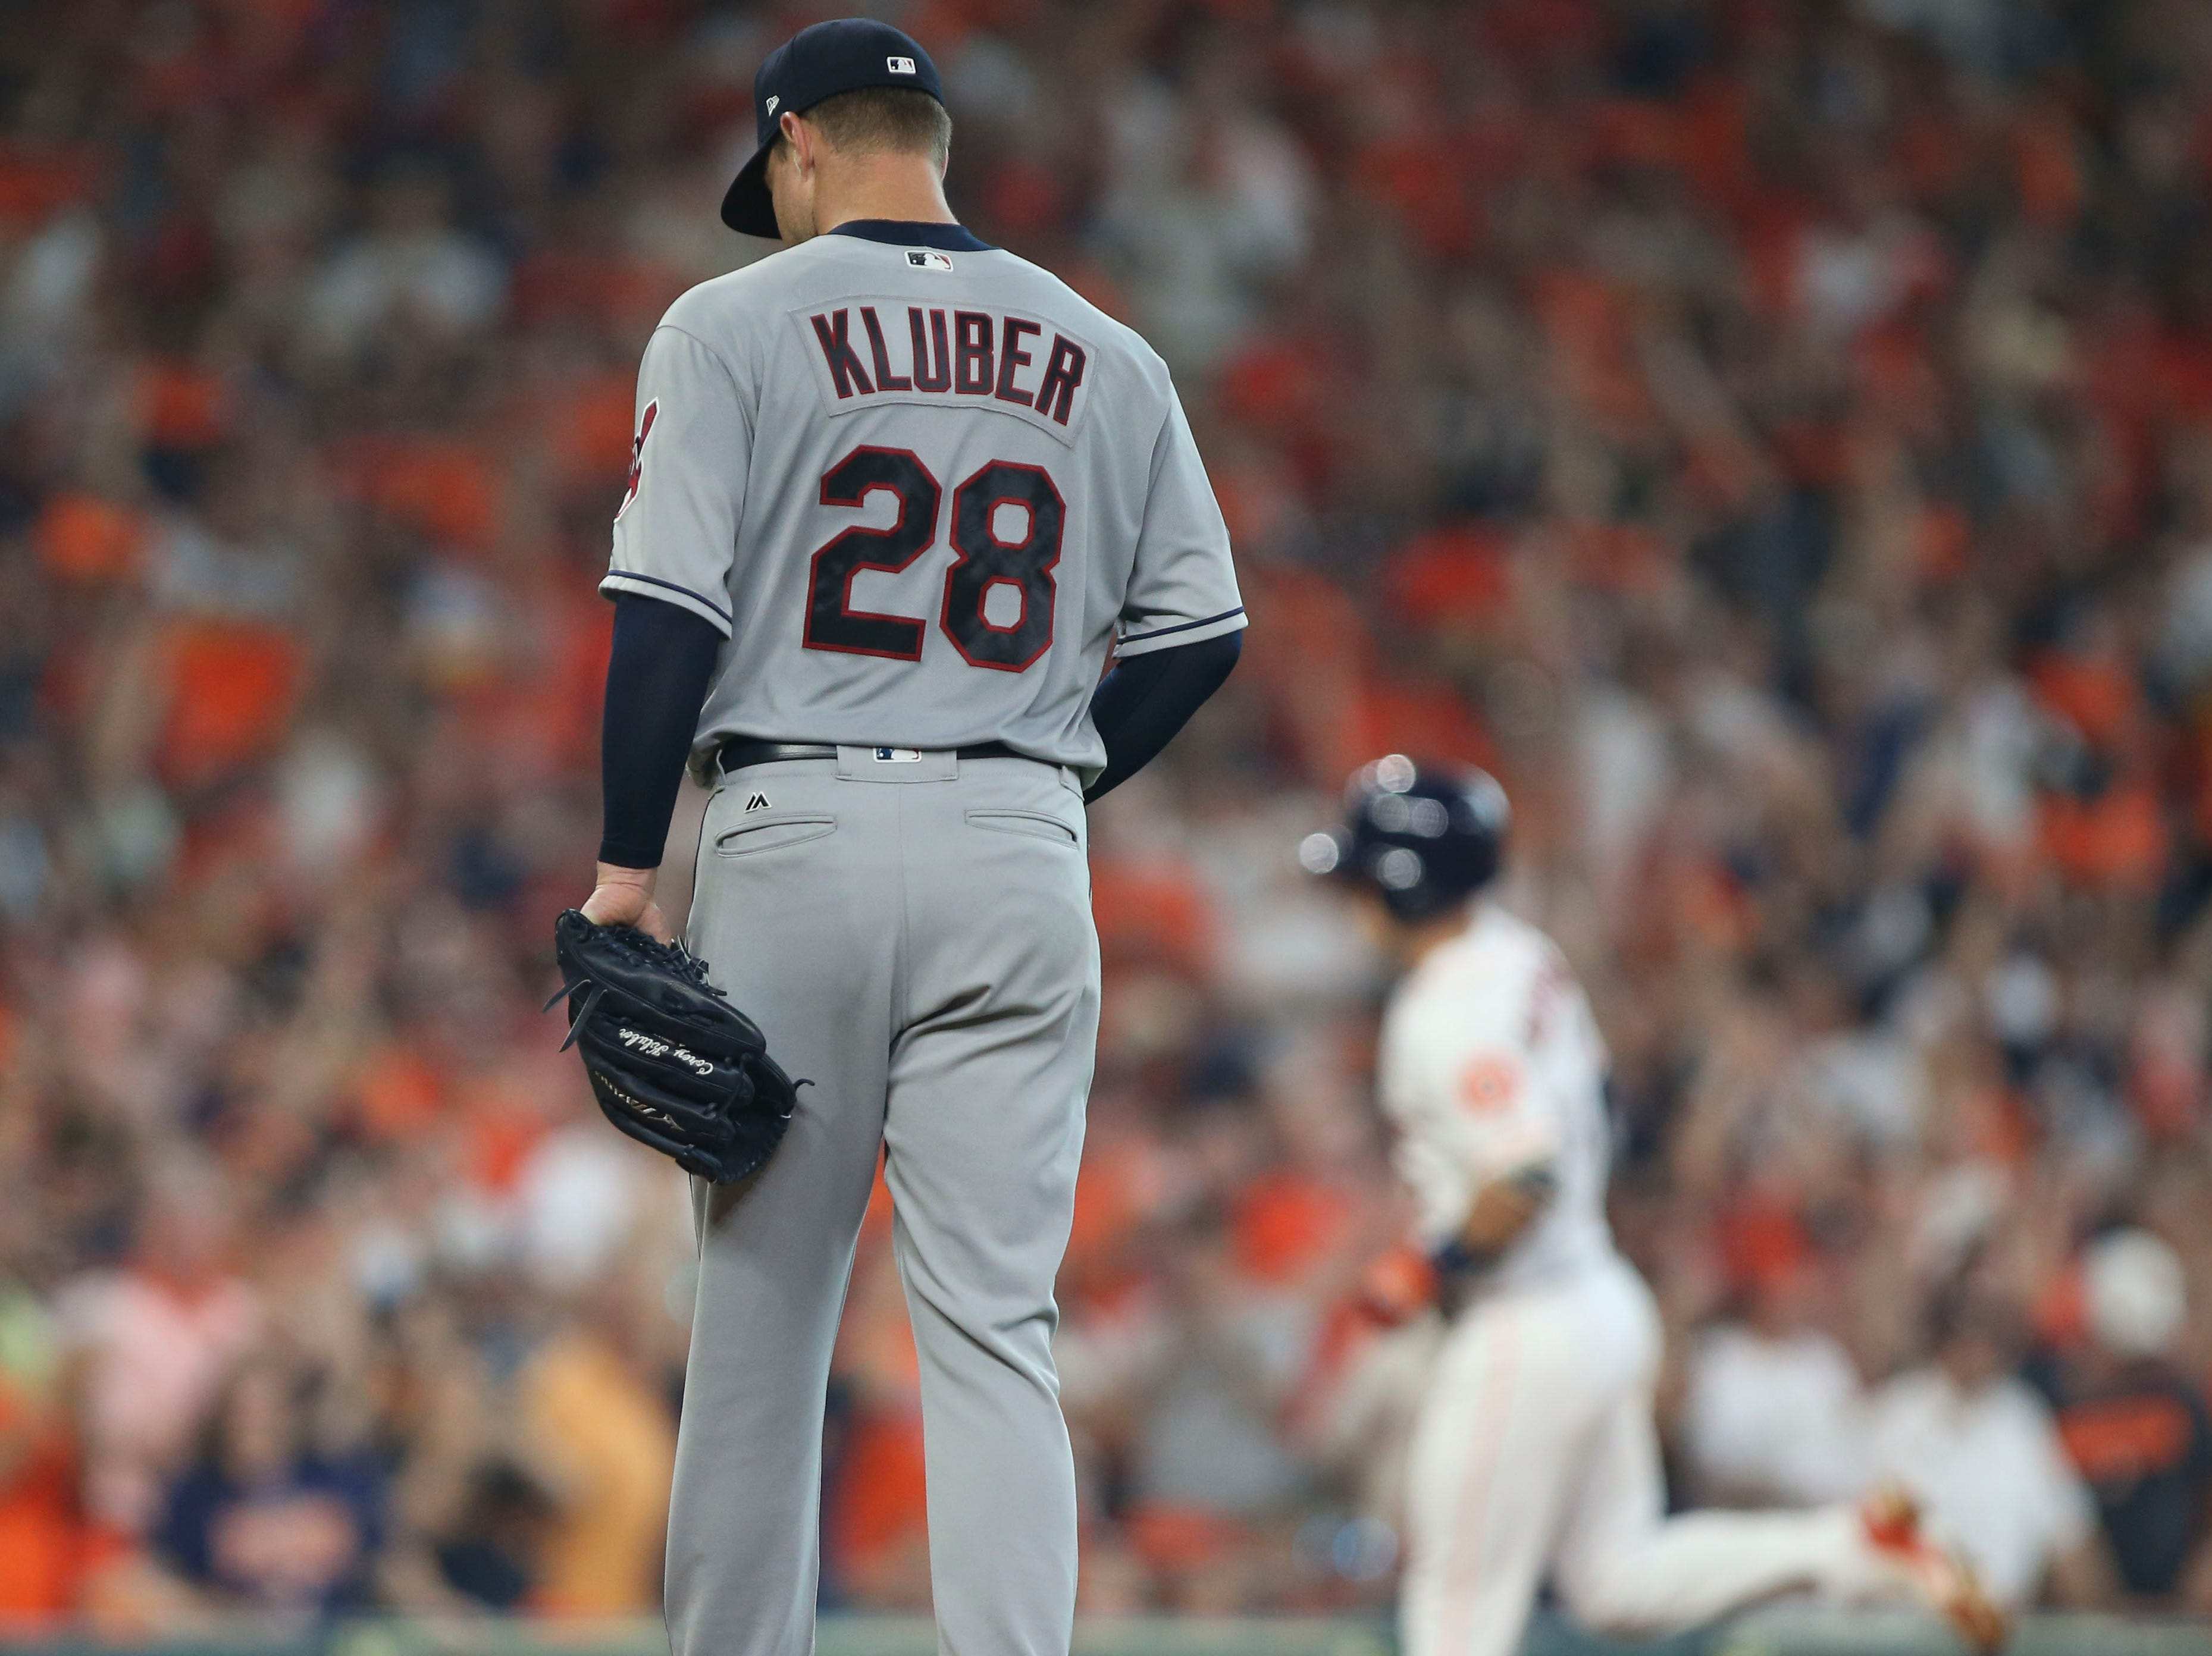 ALDS Game 1: Indians pitcher Corey Kluber reacts after giving up a solo home run against Alex Bregman in the fourth.